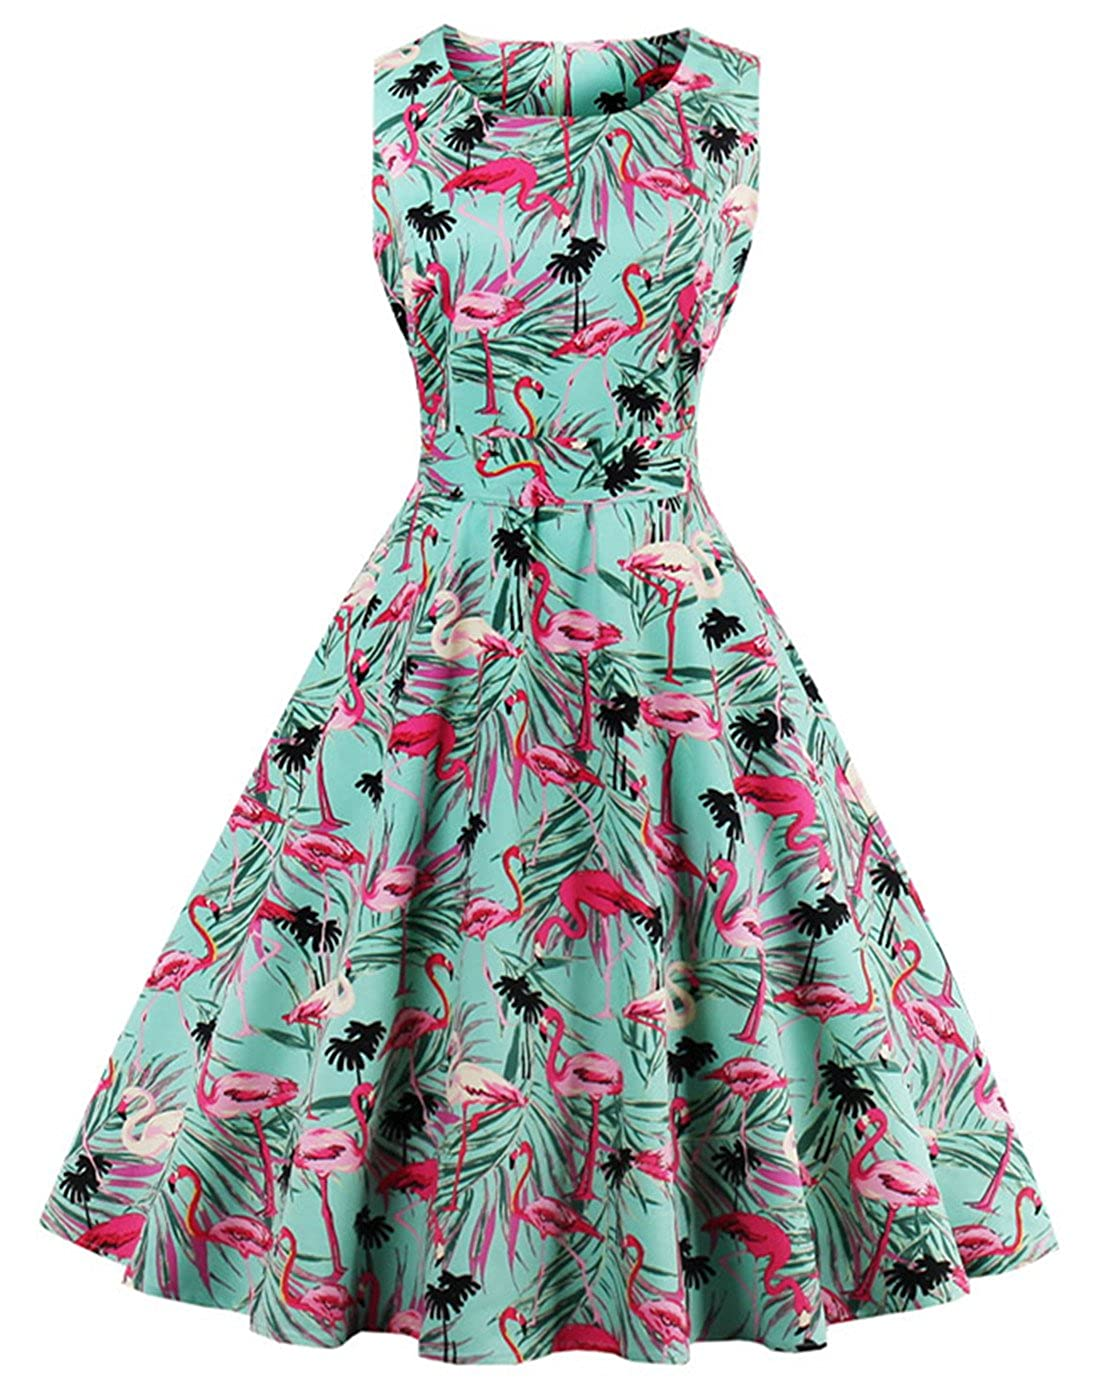 Vintage 50s Dresses: Best 1950s Dress Styles Wellwits Womens Tropical Leaf Flamingo Hepburn 1950s Vintage Swing Dress $24.98 AT vintagedancer.com